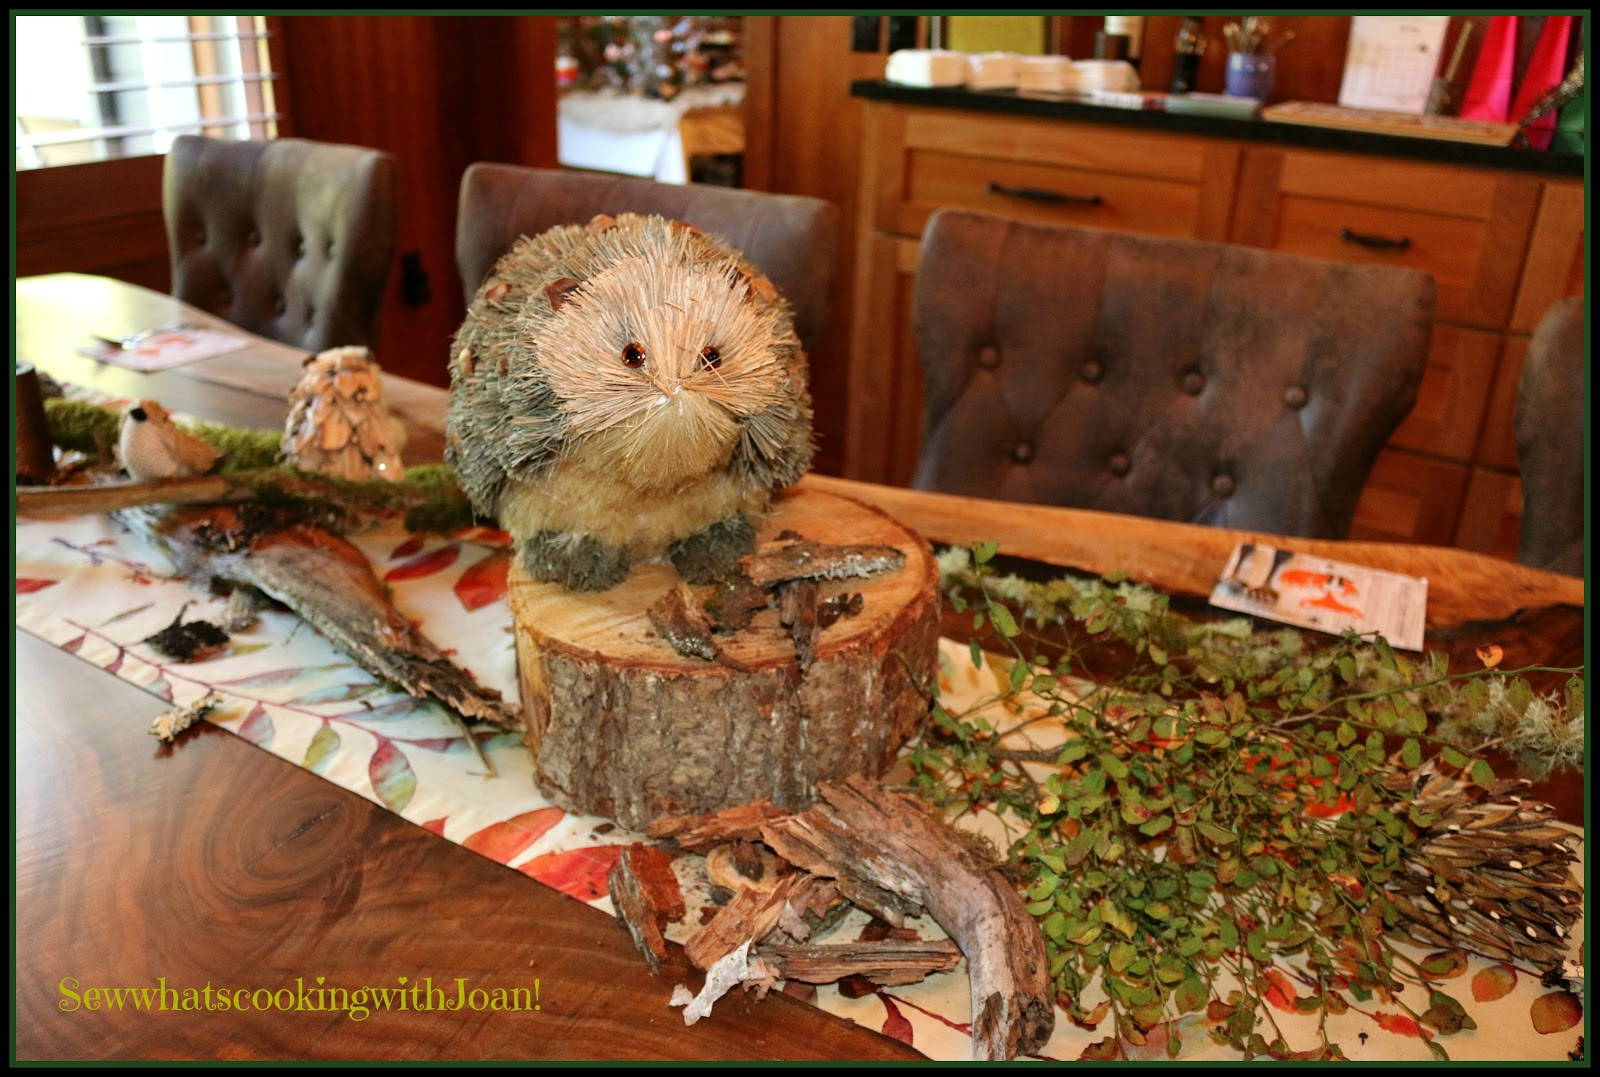 Bottle brush woodland animals - The Table Was Easily Decorated With Branches Bark Moss Bottle Brush Animals A Fall Table Runner I Have Had For Years And Log Rounds